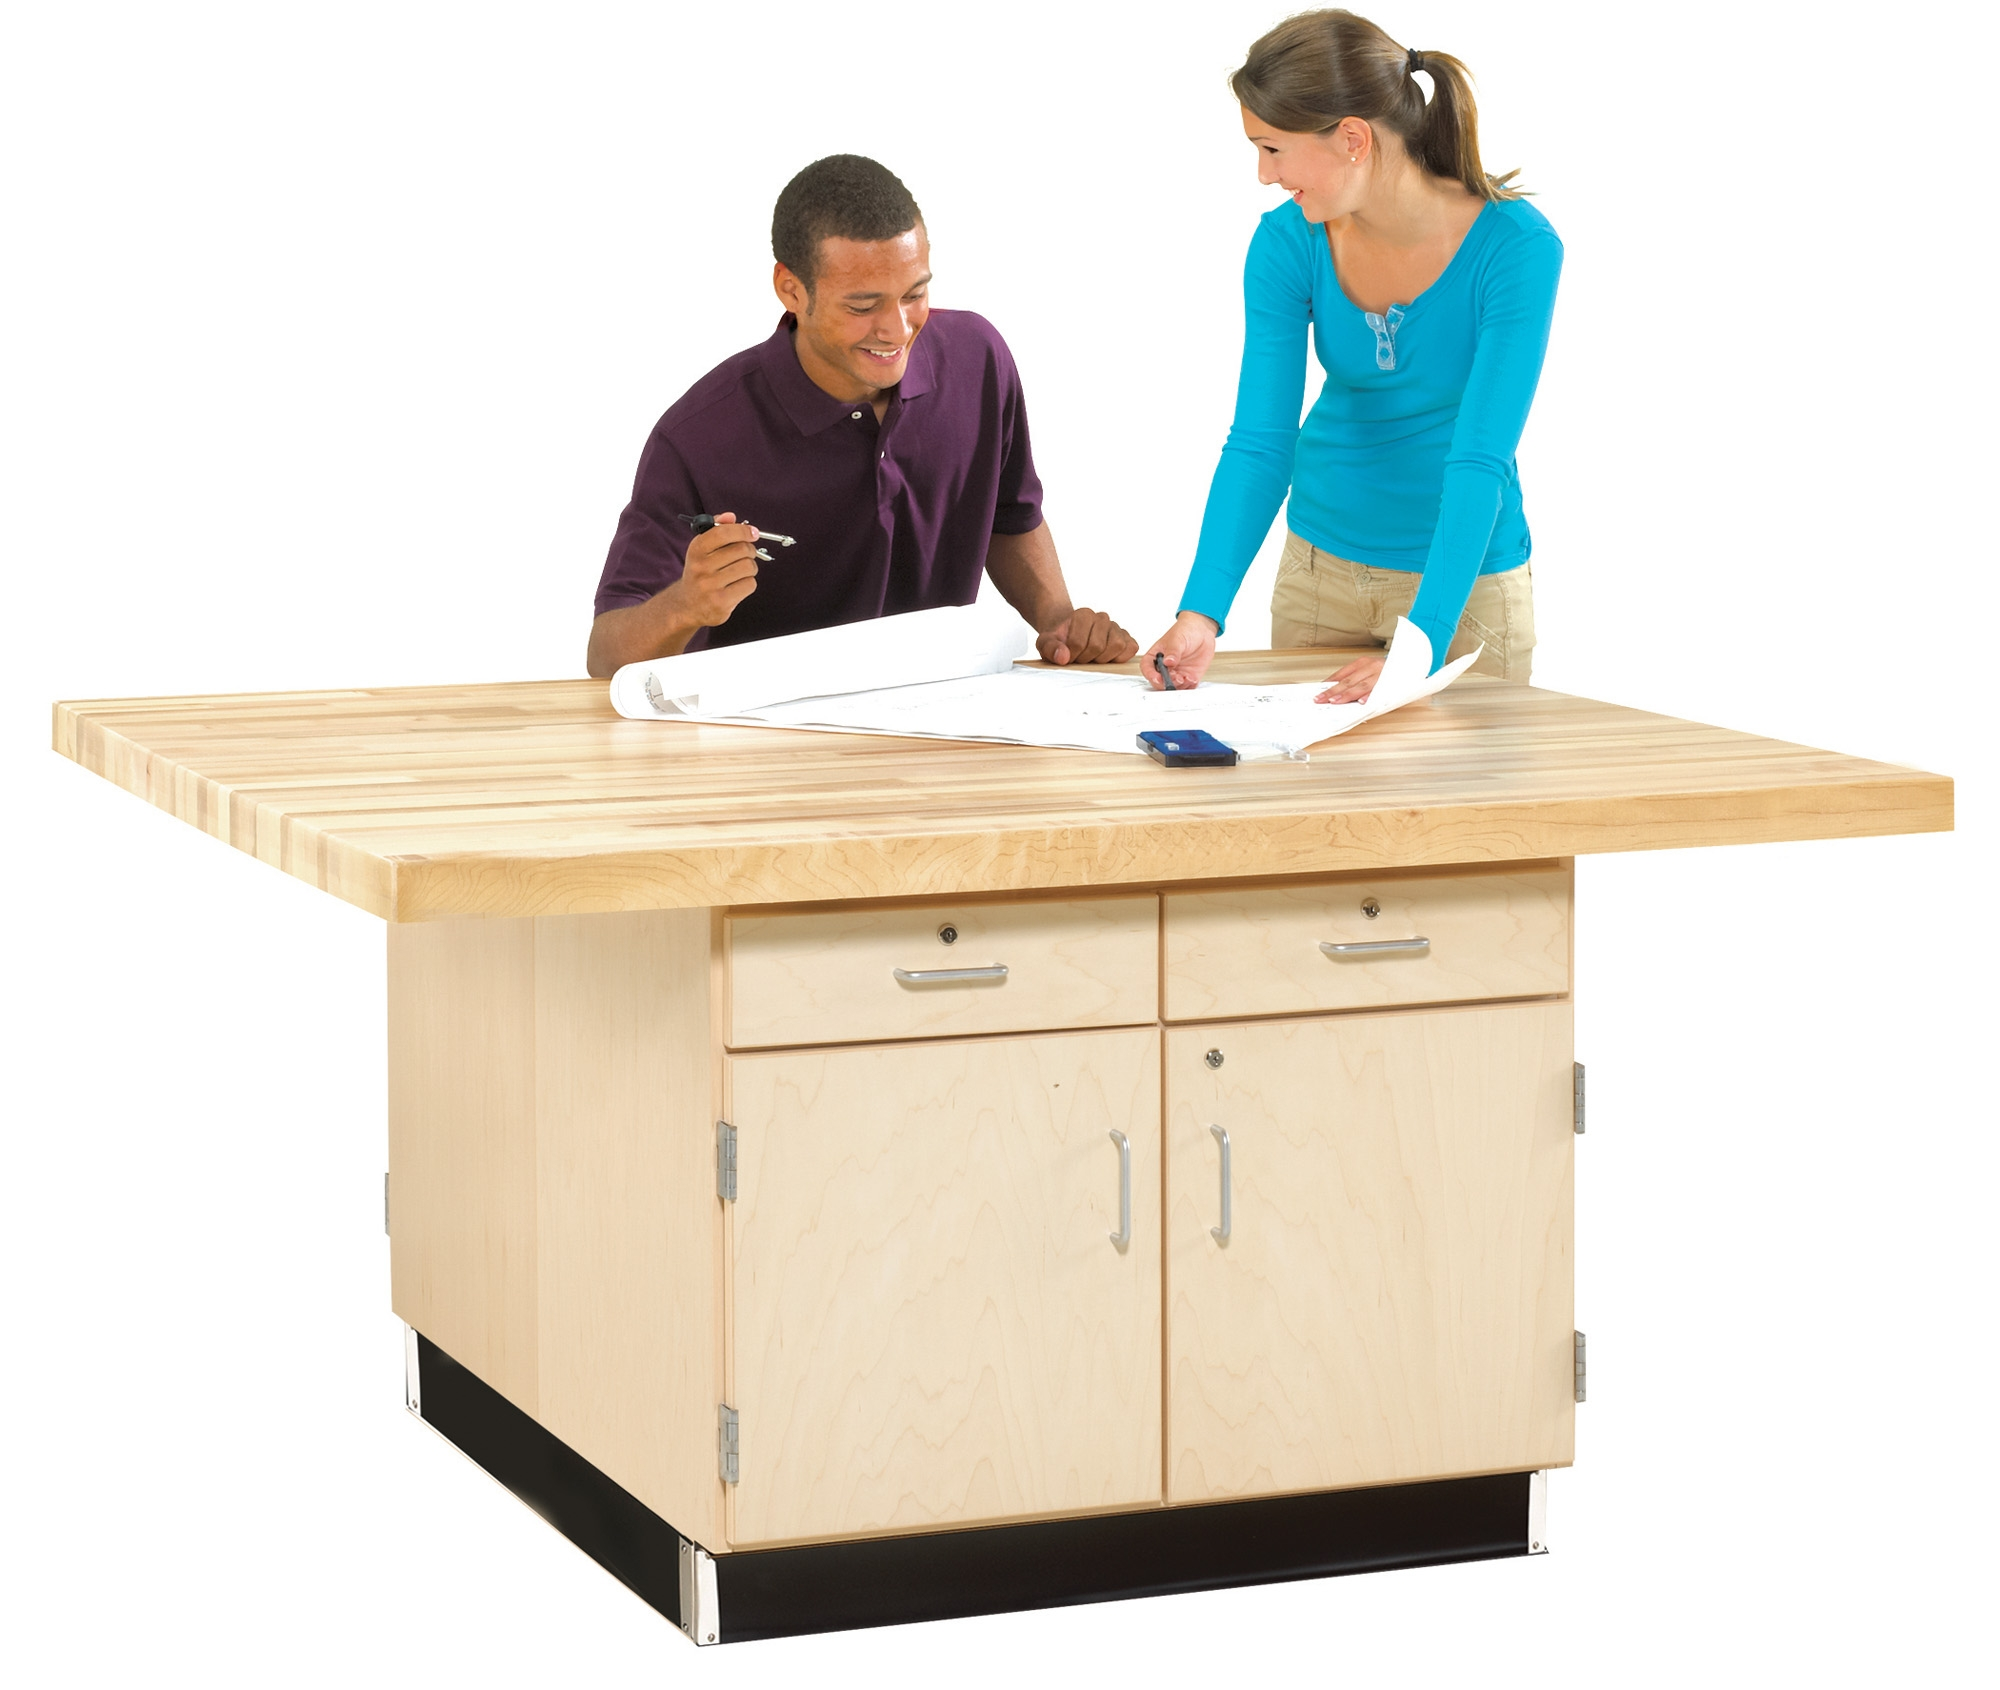 Diversified Woodcrafts 4 Station Workbench with Cabinet and Drawers